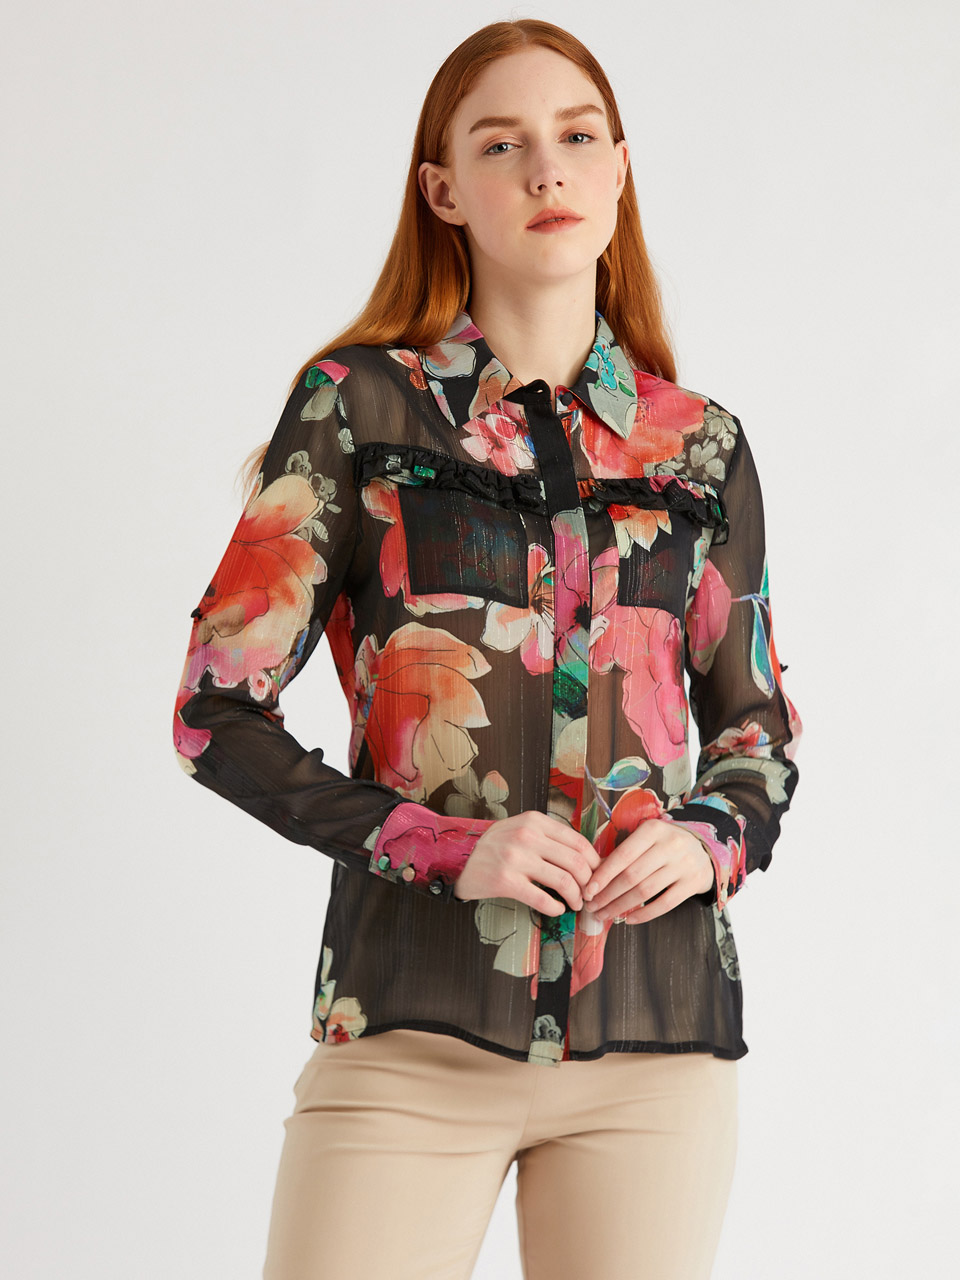 Ruffle Detail Floral Patterned Shirt